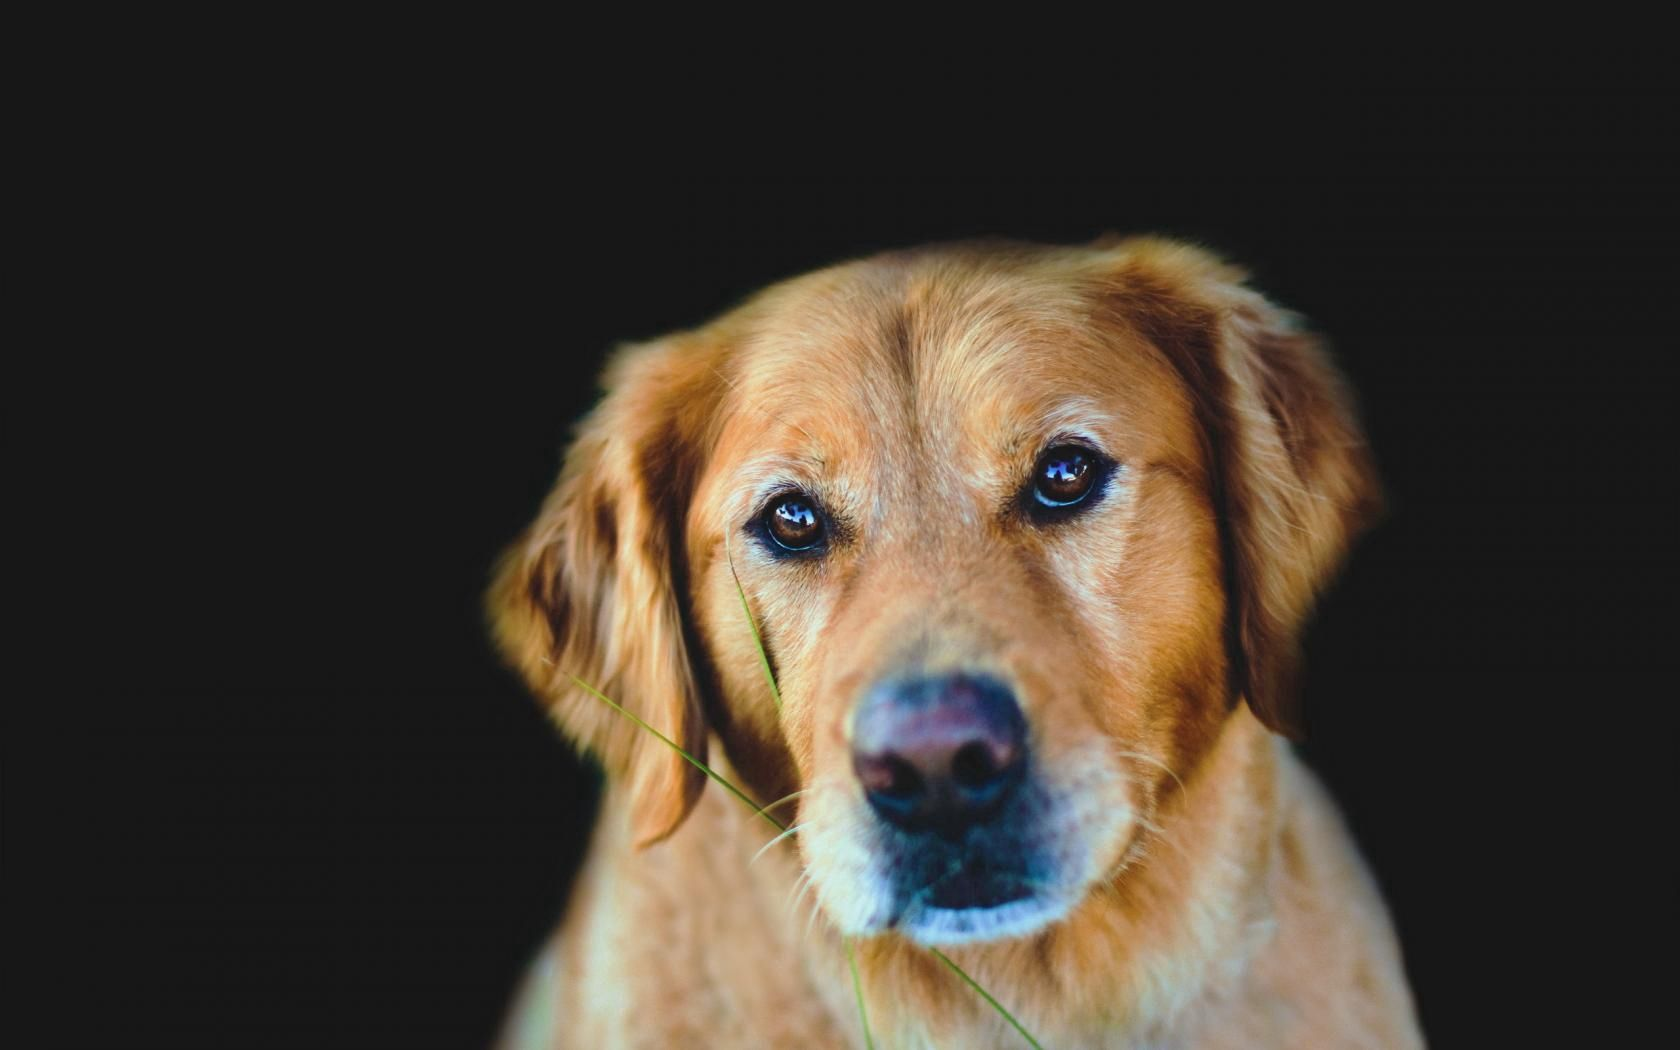 155728 download wallpaper Animals, Dog, Muzzle, Background, Dark, Sight, Opinion, Sadness, Sorrow screensavers and pictures for free